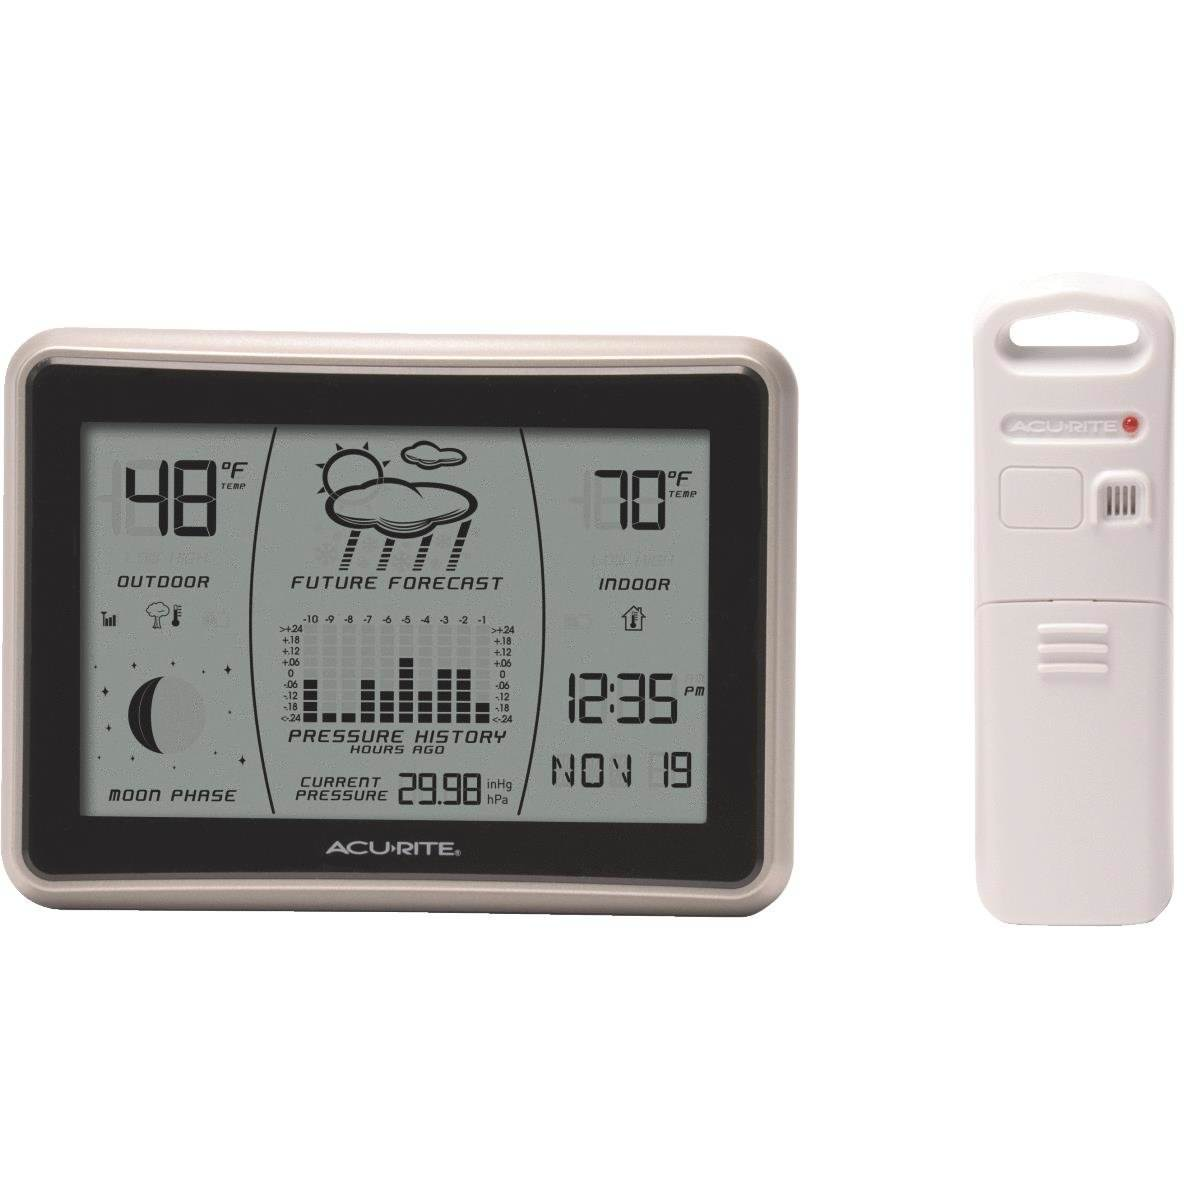 Acurite 00621 Wireless Weather Station with Forecast - including Moon Phase